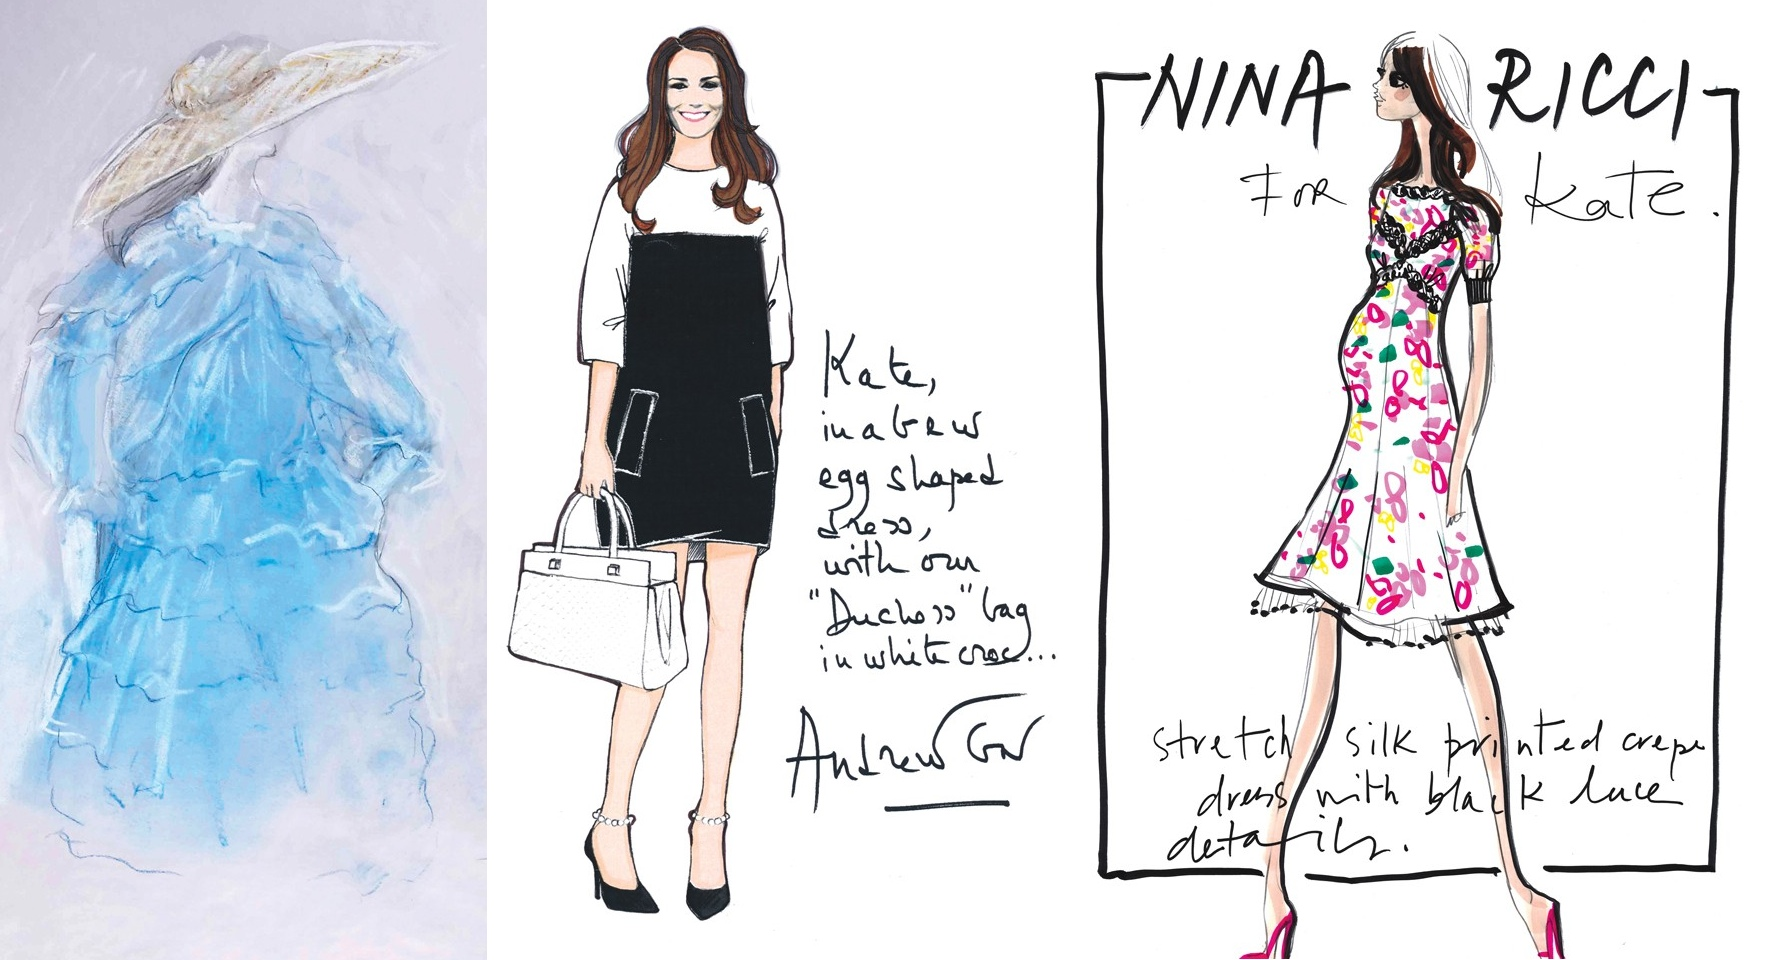 Lorry Newhouse, Andrew Gn & Nina Ricci Courtesy Images via Women's Wear Daily